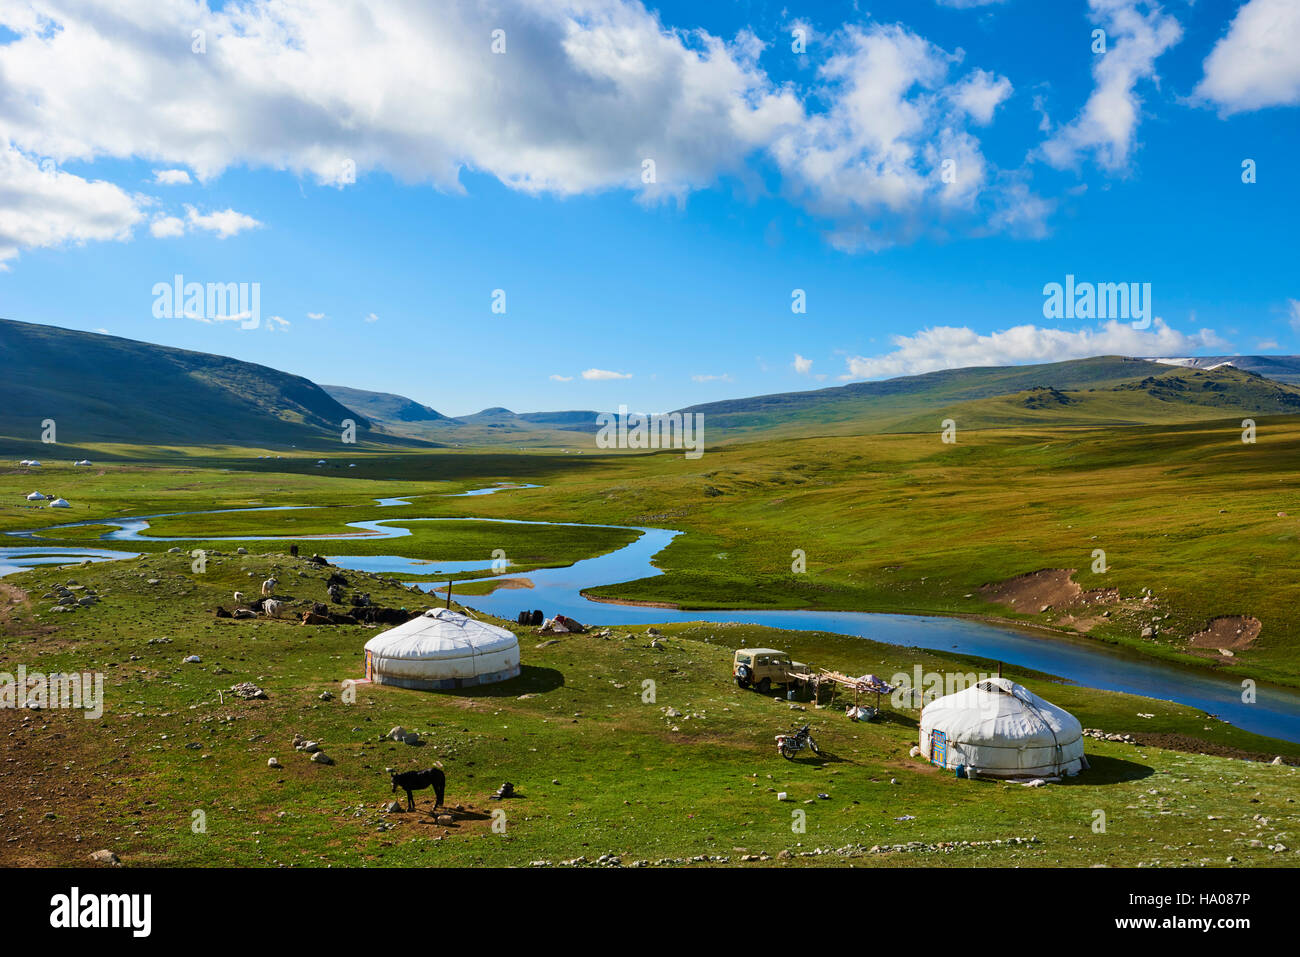 Mongolia, Bayan-Ulgii province, western Mongolia, National parc of Tavan Bogd, nomad camp of Kazakh people in Altay - Stock Image